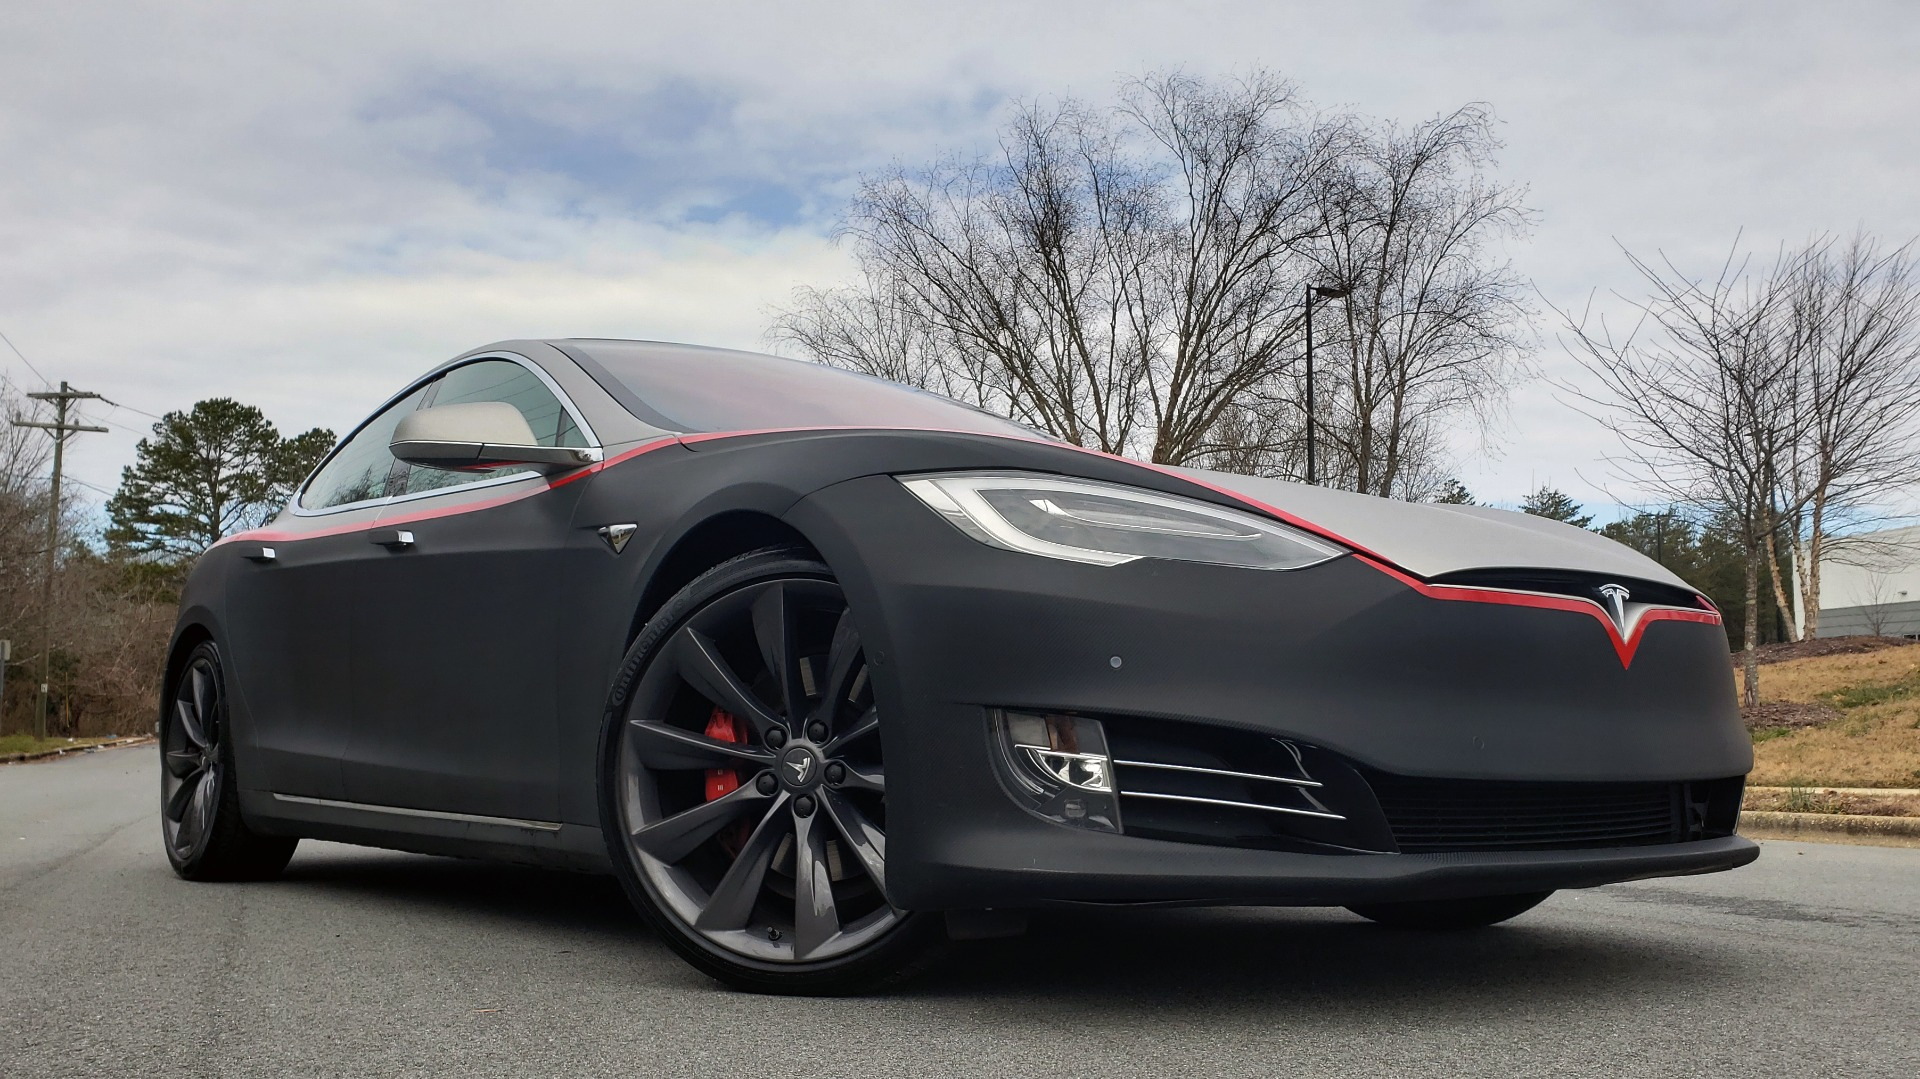 Used 2017 Tesla MODEL S P100D LUDICROUS PERF / PREM / TECH / AUTO PILOT for sale Sold at Formula Imports in Charlotte NC 28227 3